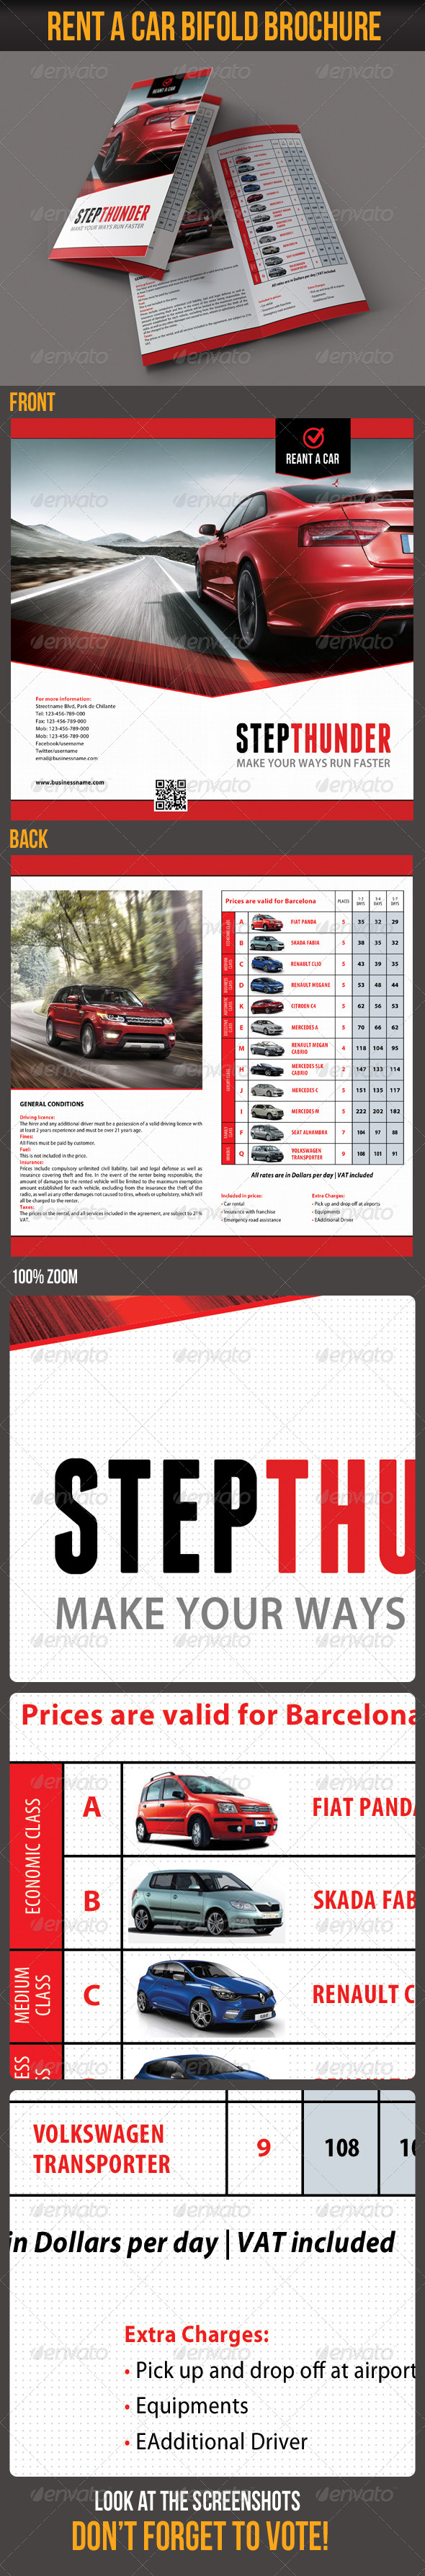 GraphicRiver Rent A Car Bifold Brochure 5391729